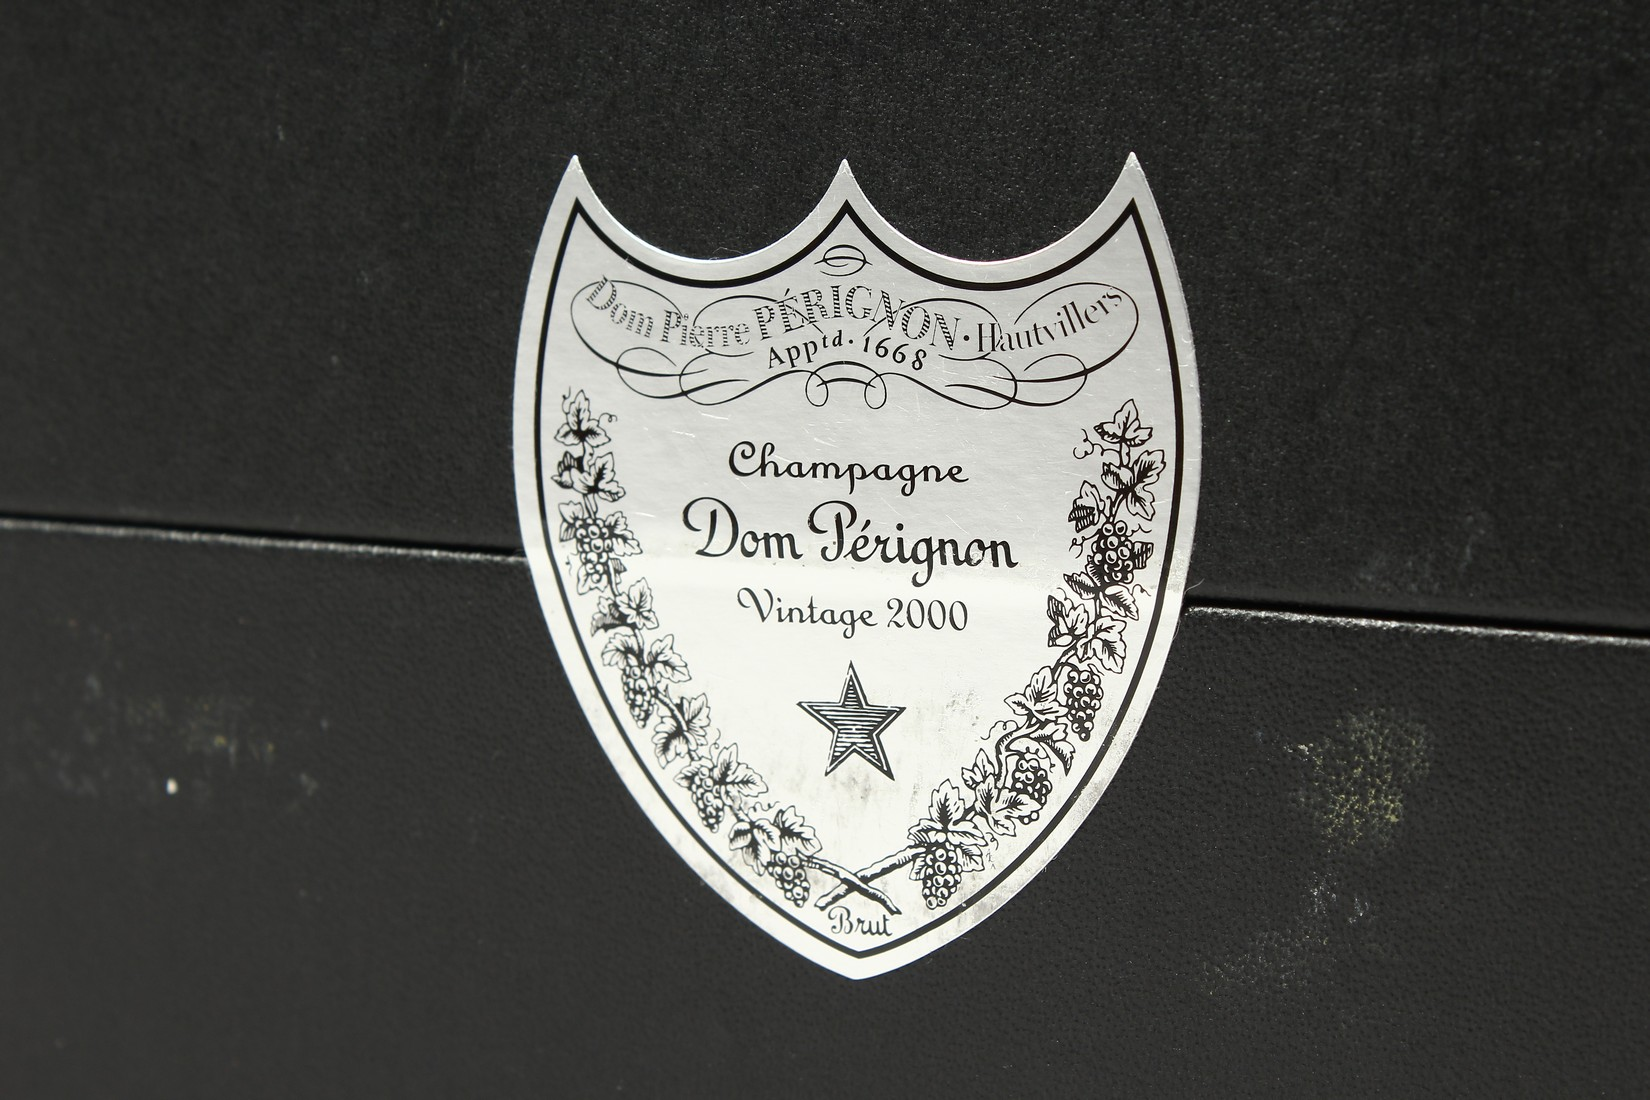 A BOTTLE OF 2000 DOM PERIGNON in an unopened box. - Image 2 of 2